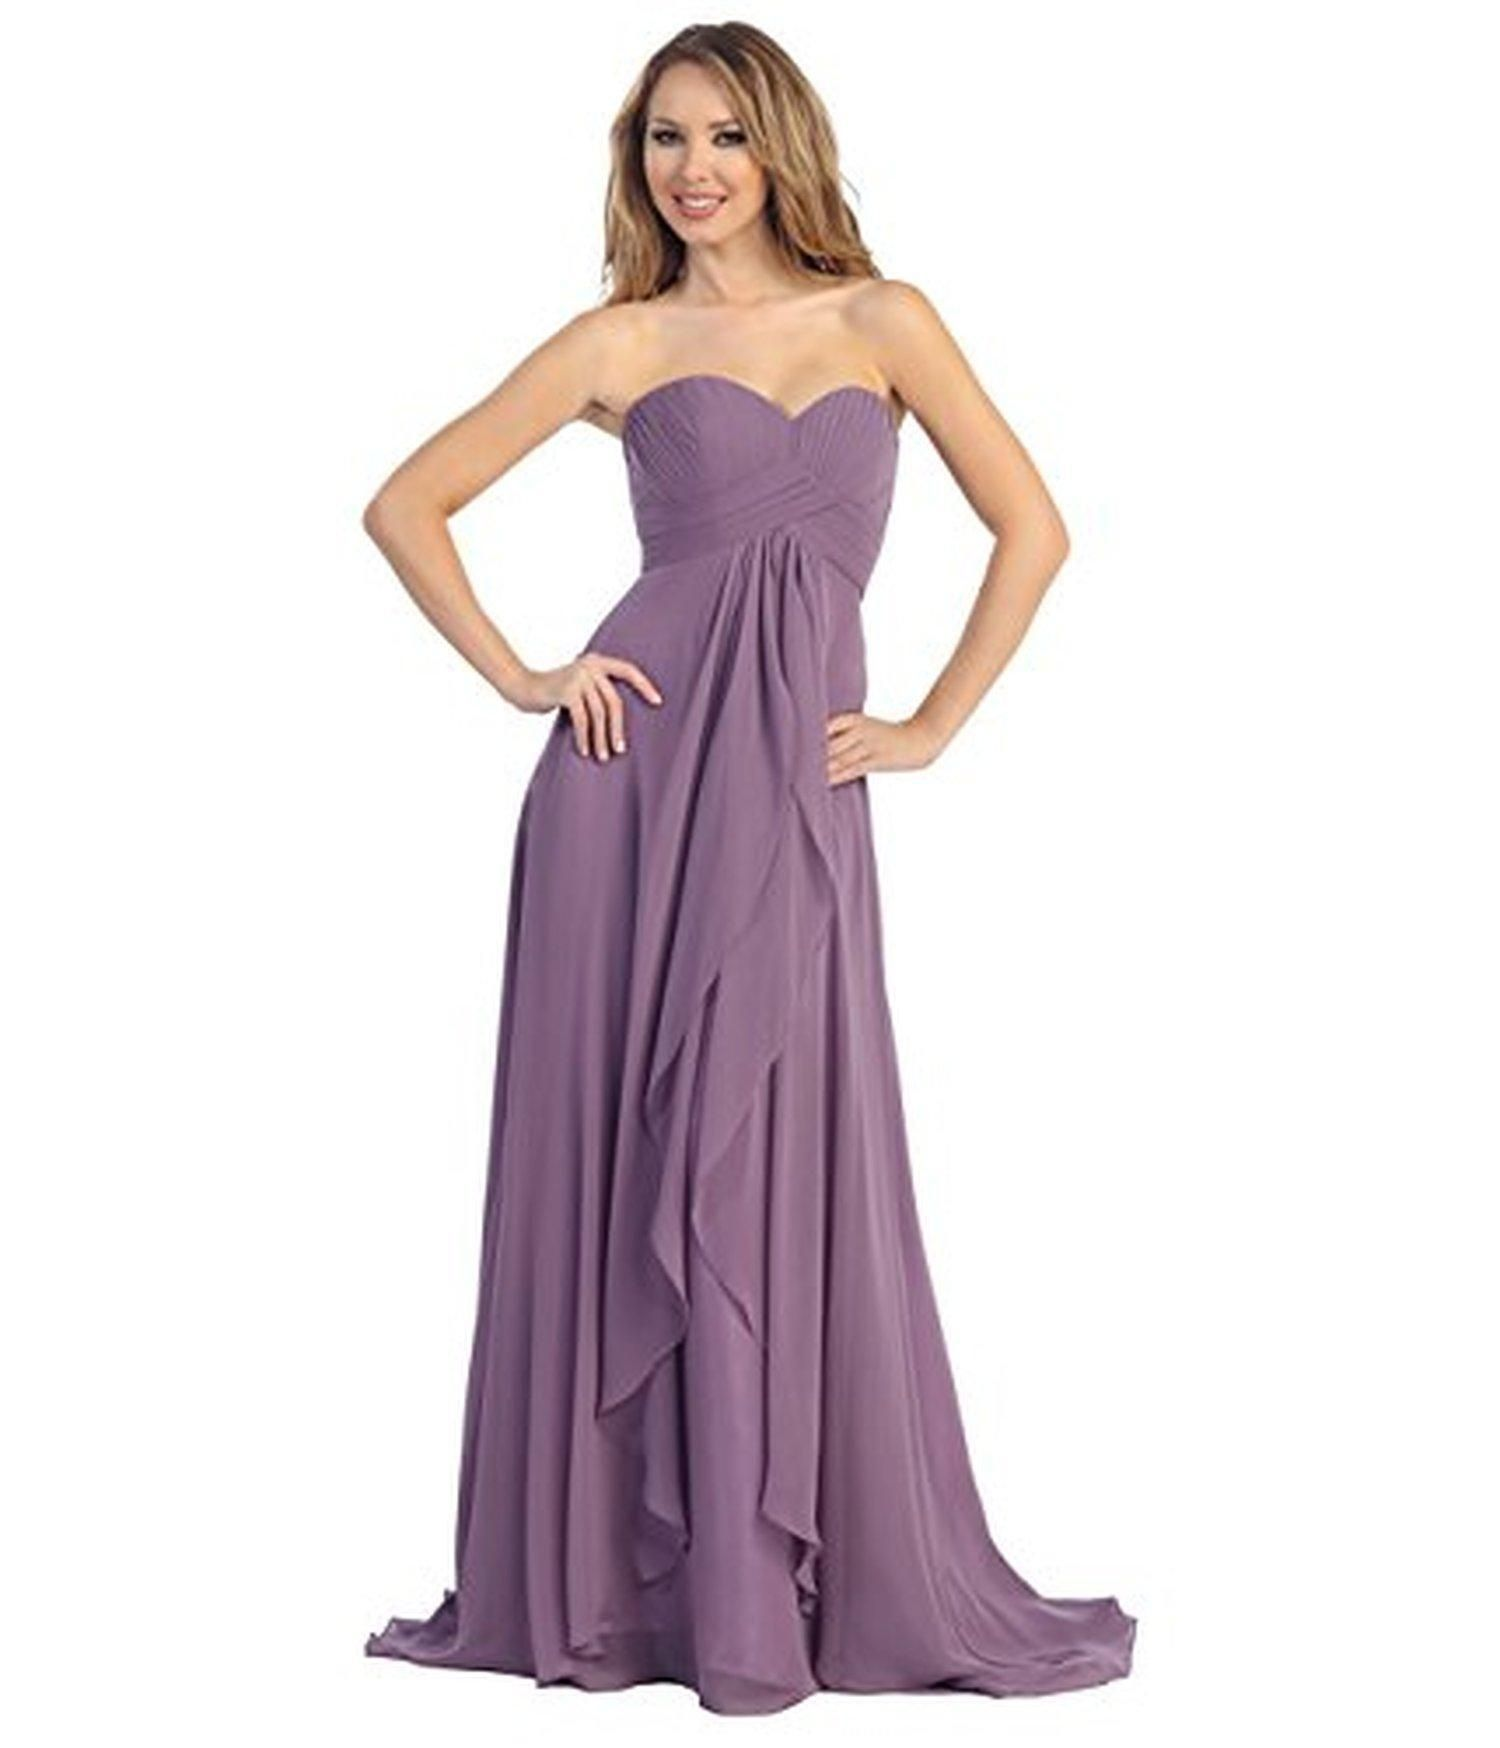 Mauve Pleated Chiffon Strapless Sweetheart Gown for Homecoming 2016 ...